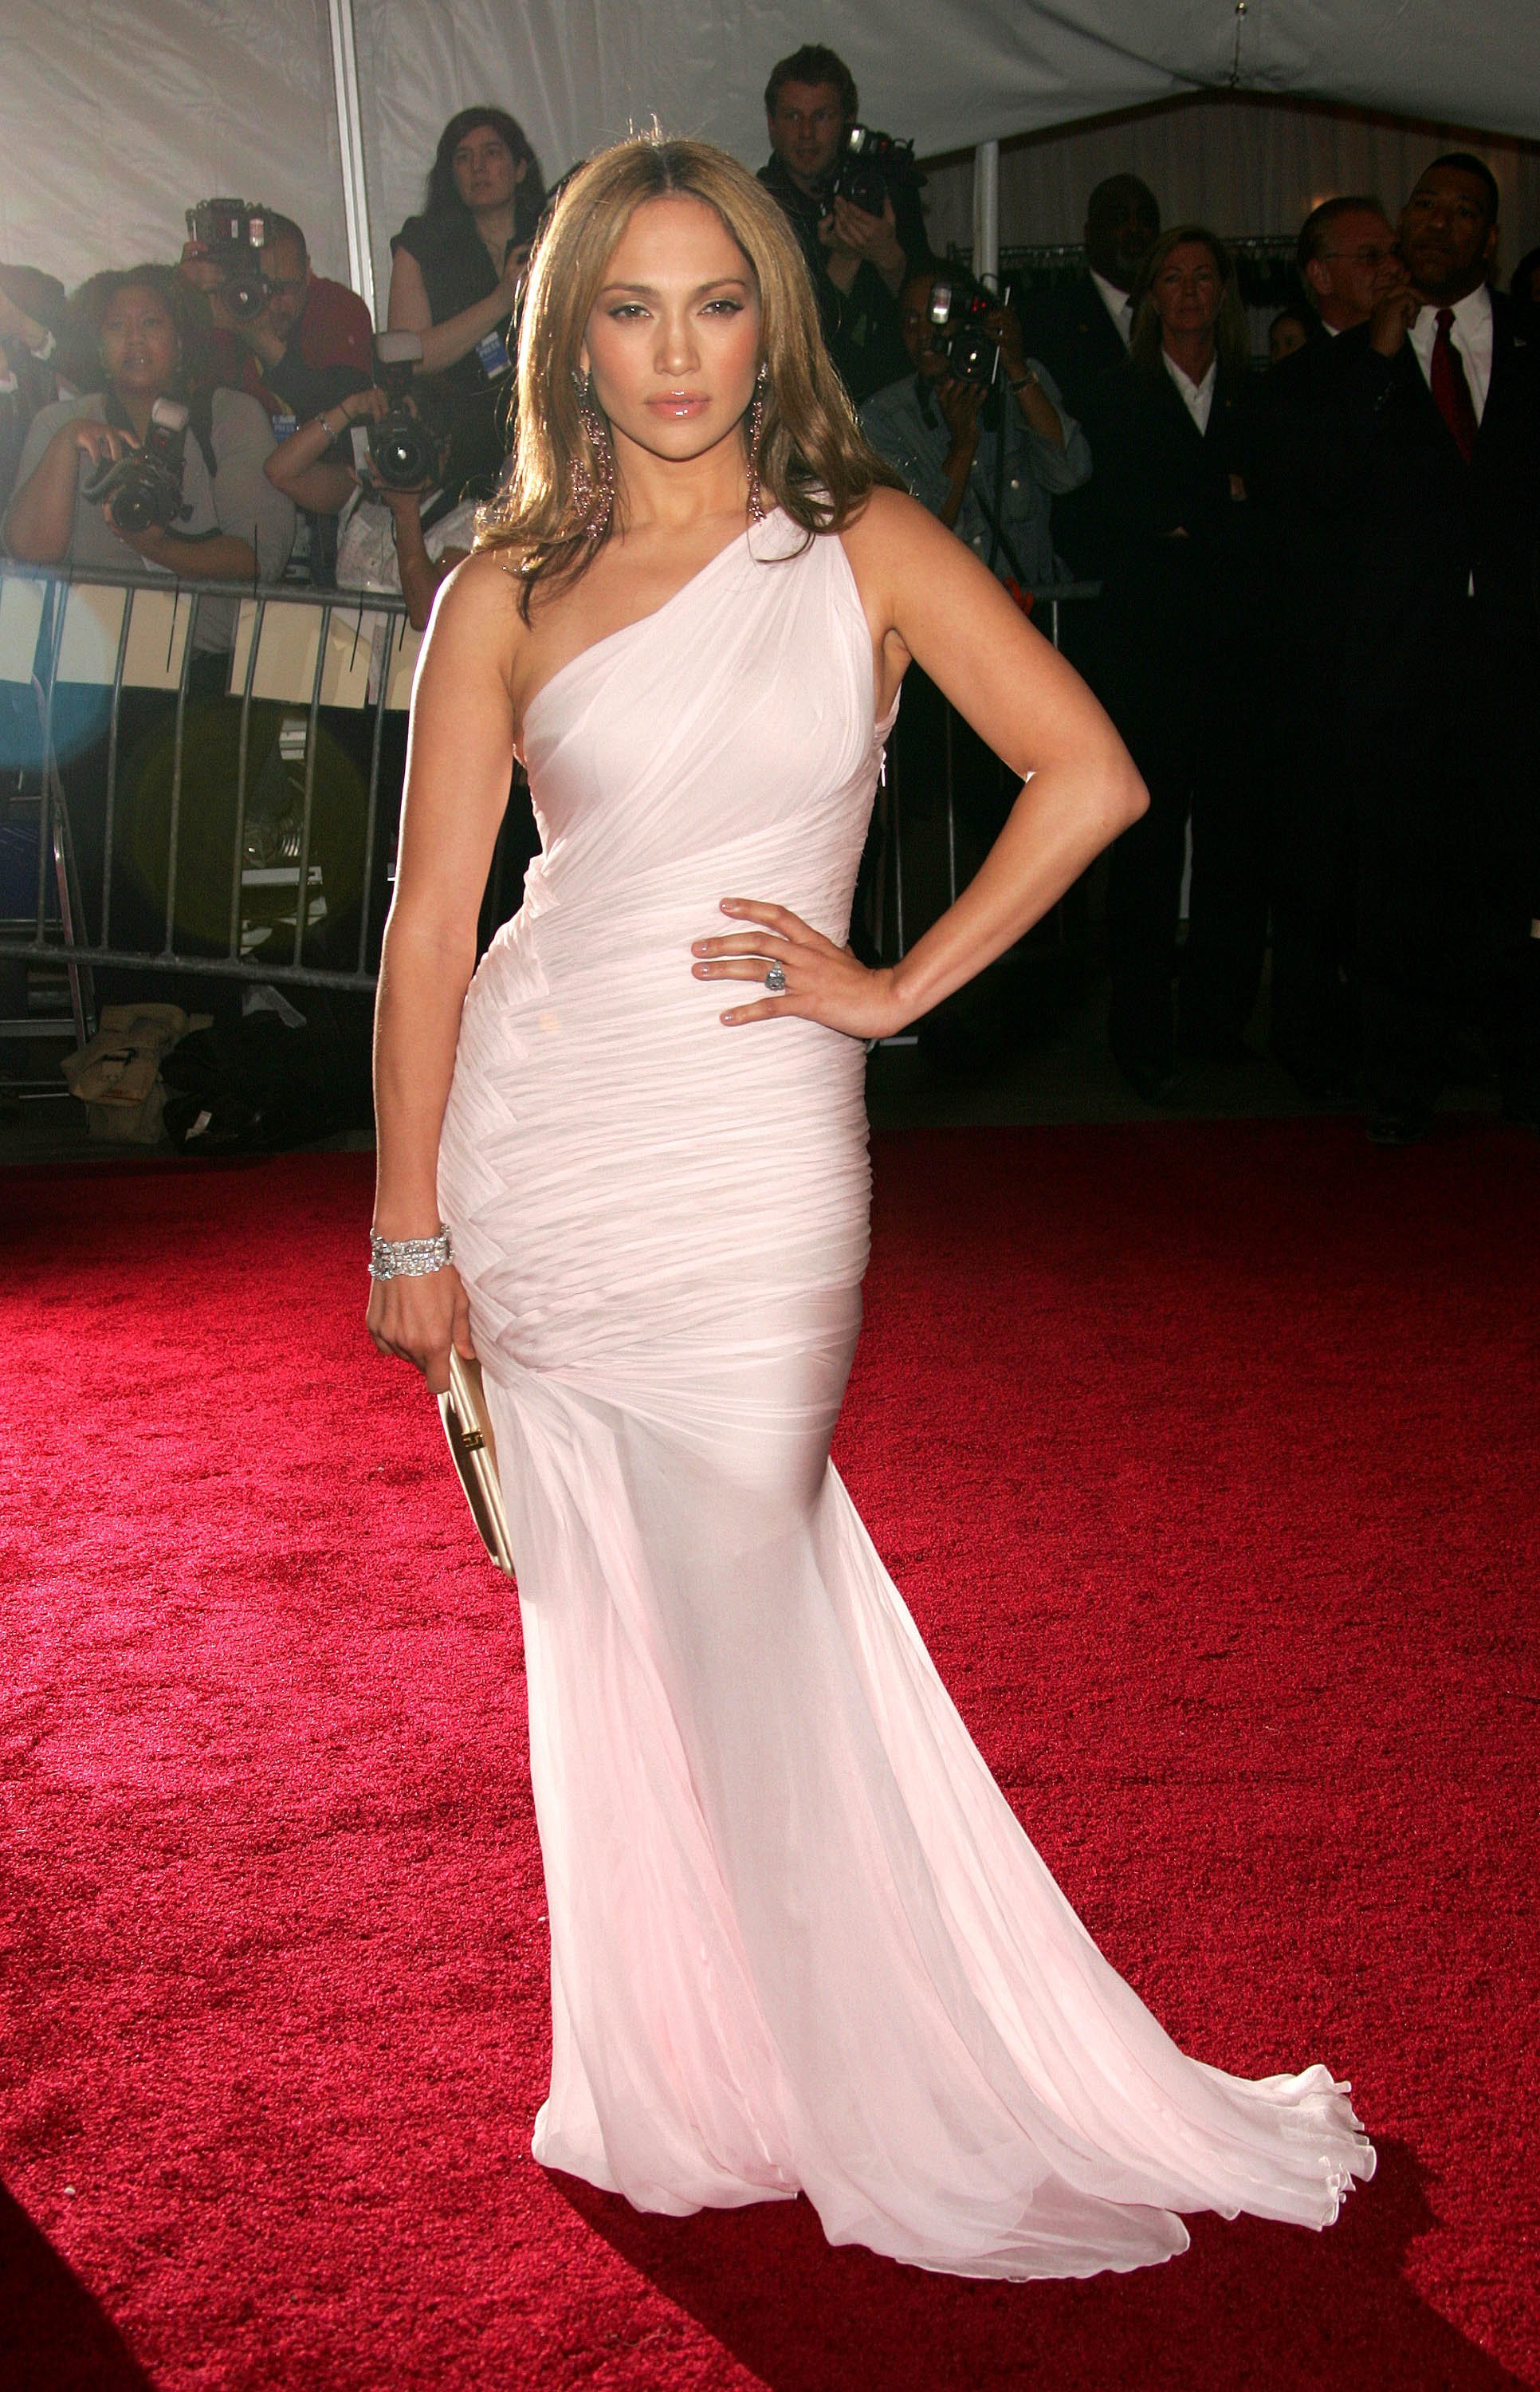 Image Source: Getty Images| Jennifer Lopez at a red carpet event